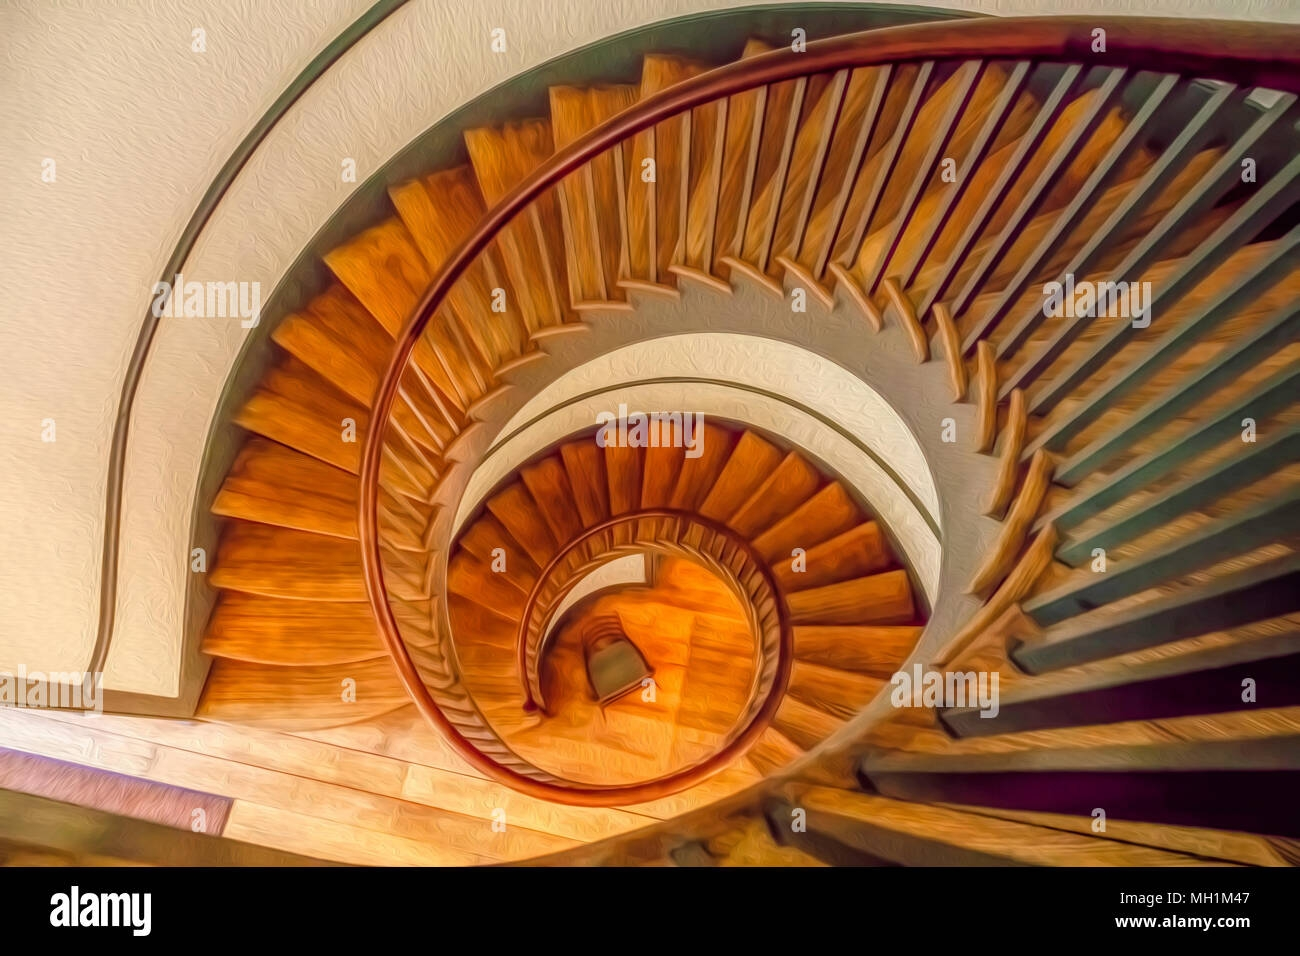 Top View Of Vintage Wooden Spiral Staircase With Digital Oil   Painting Metal Spiral Staircase   Stair Case   Staircase Kit   Stair Railing   Powder Coating   Spray Paint